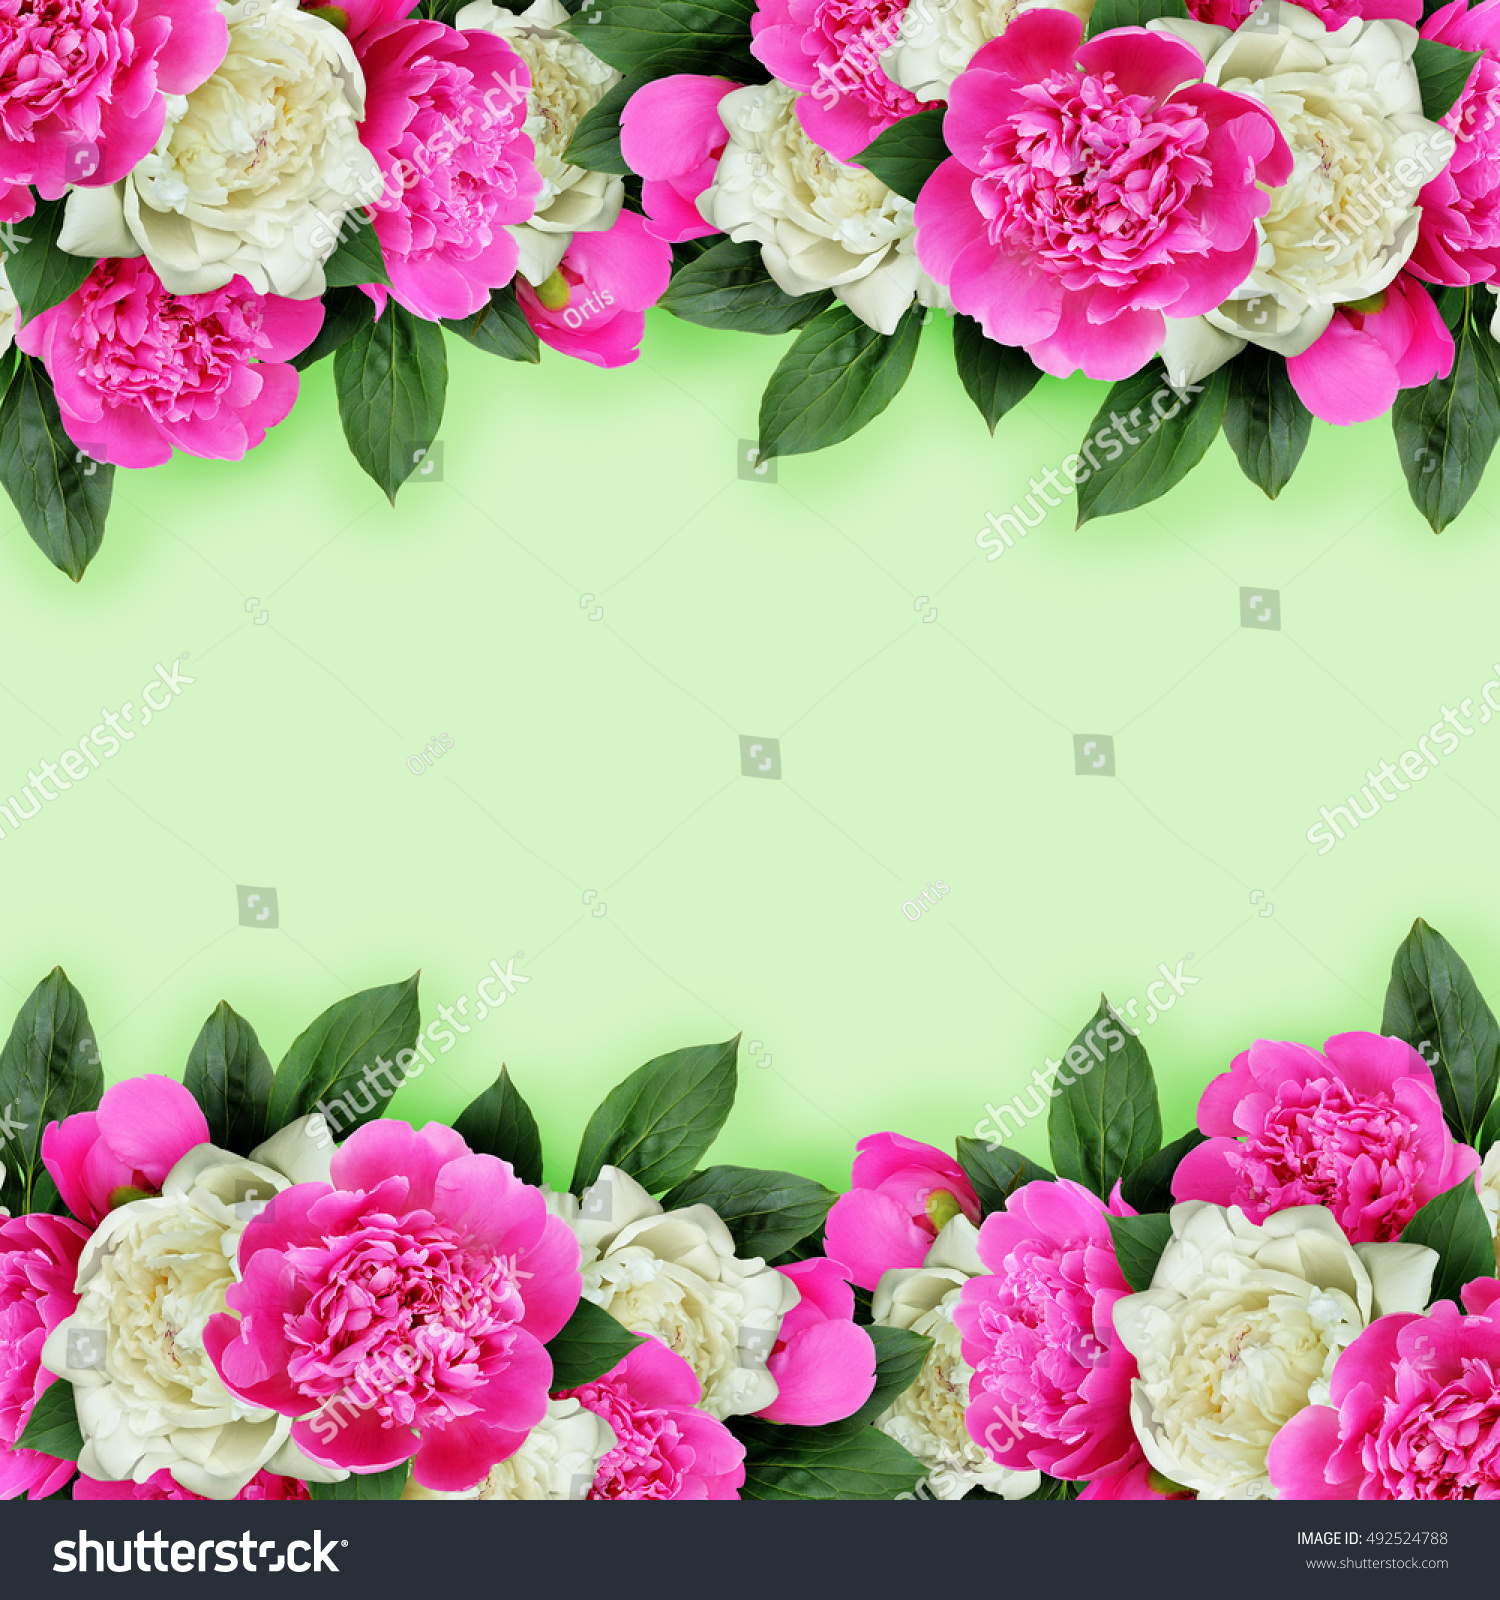 Pink And White Peonies Flowers Header Ez Canvas